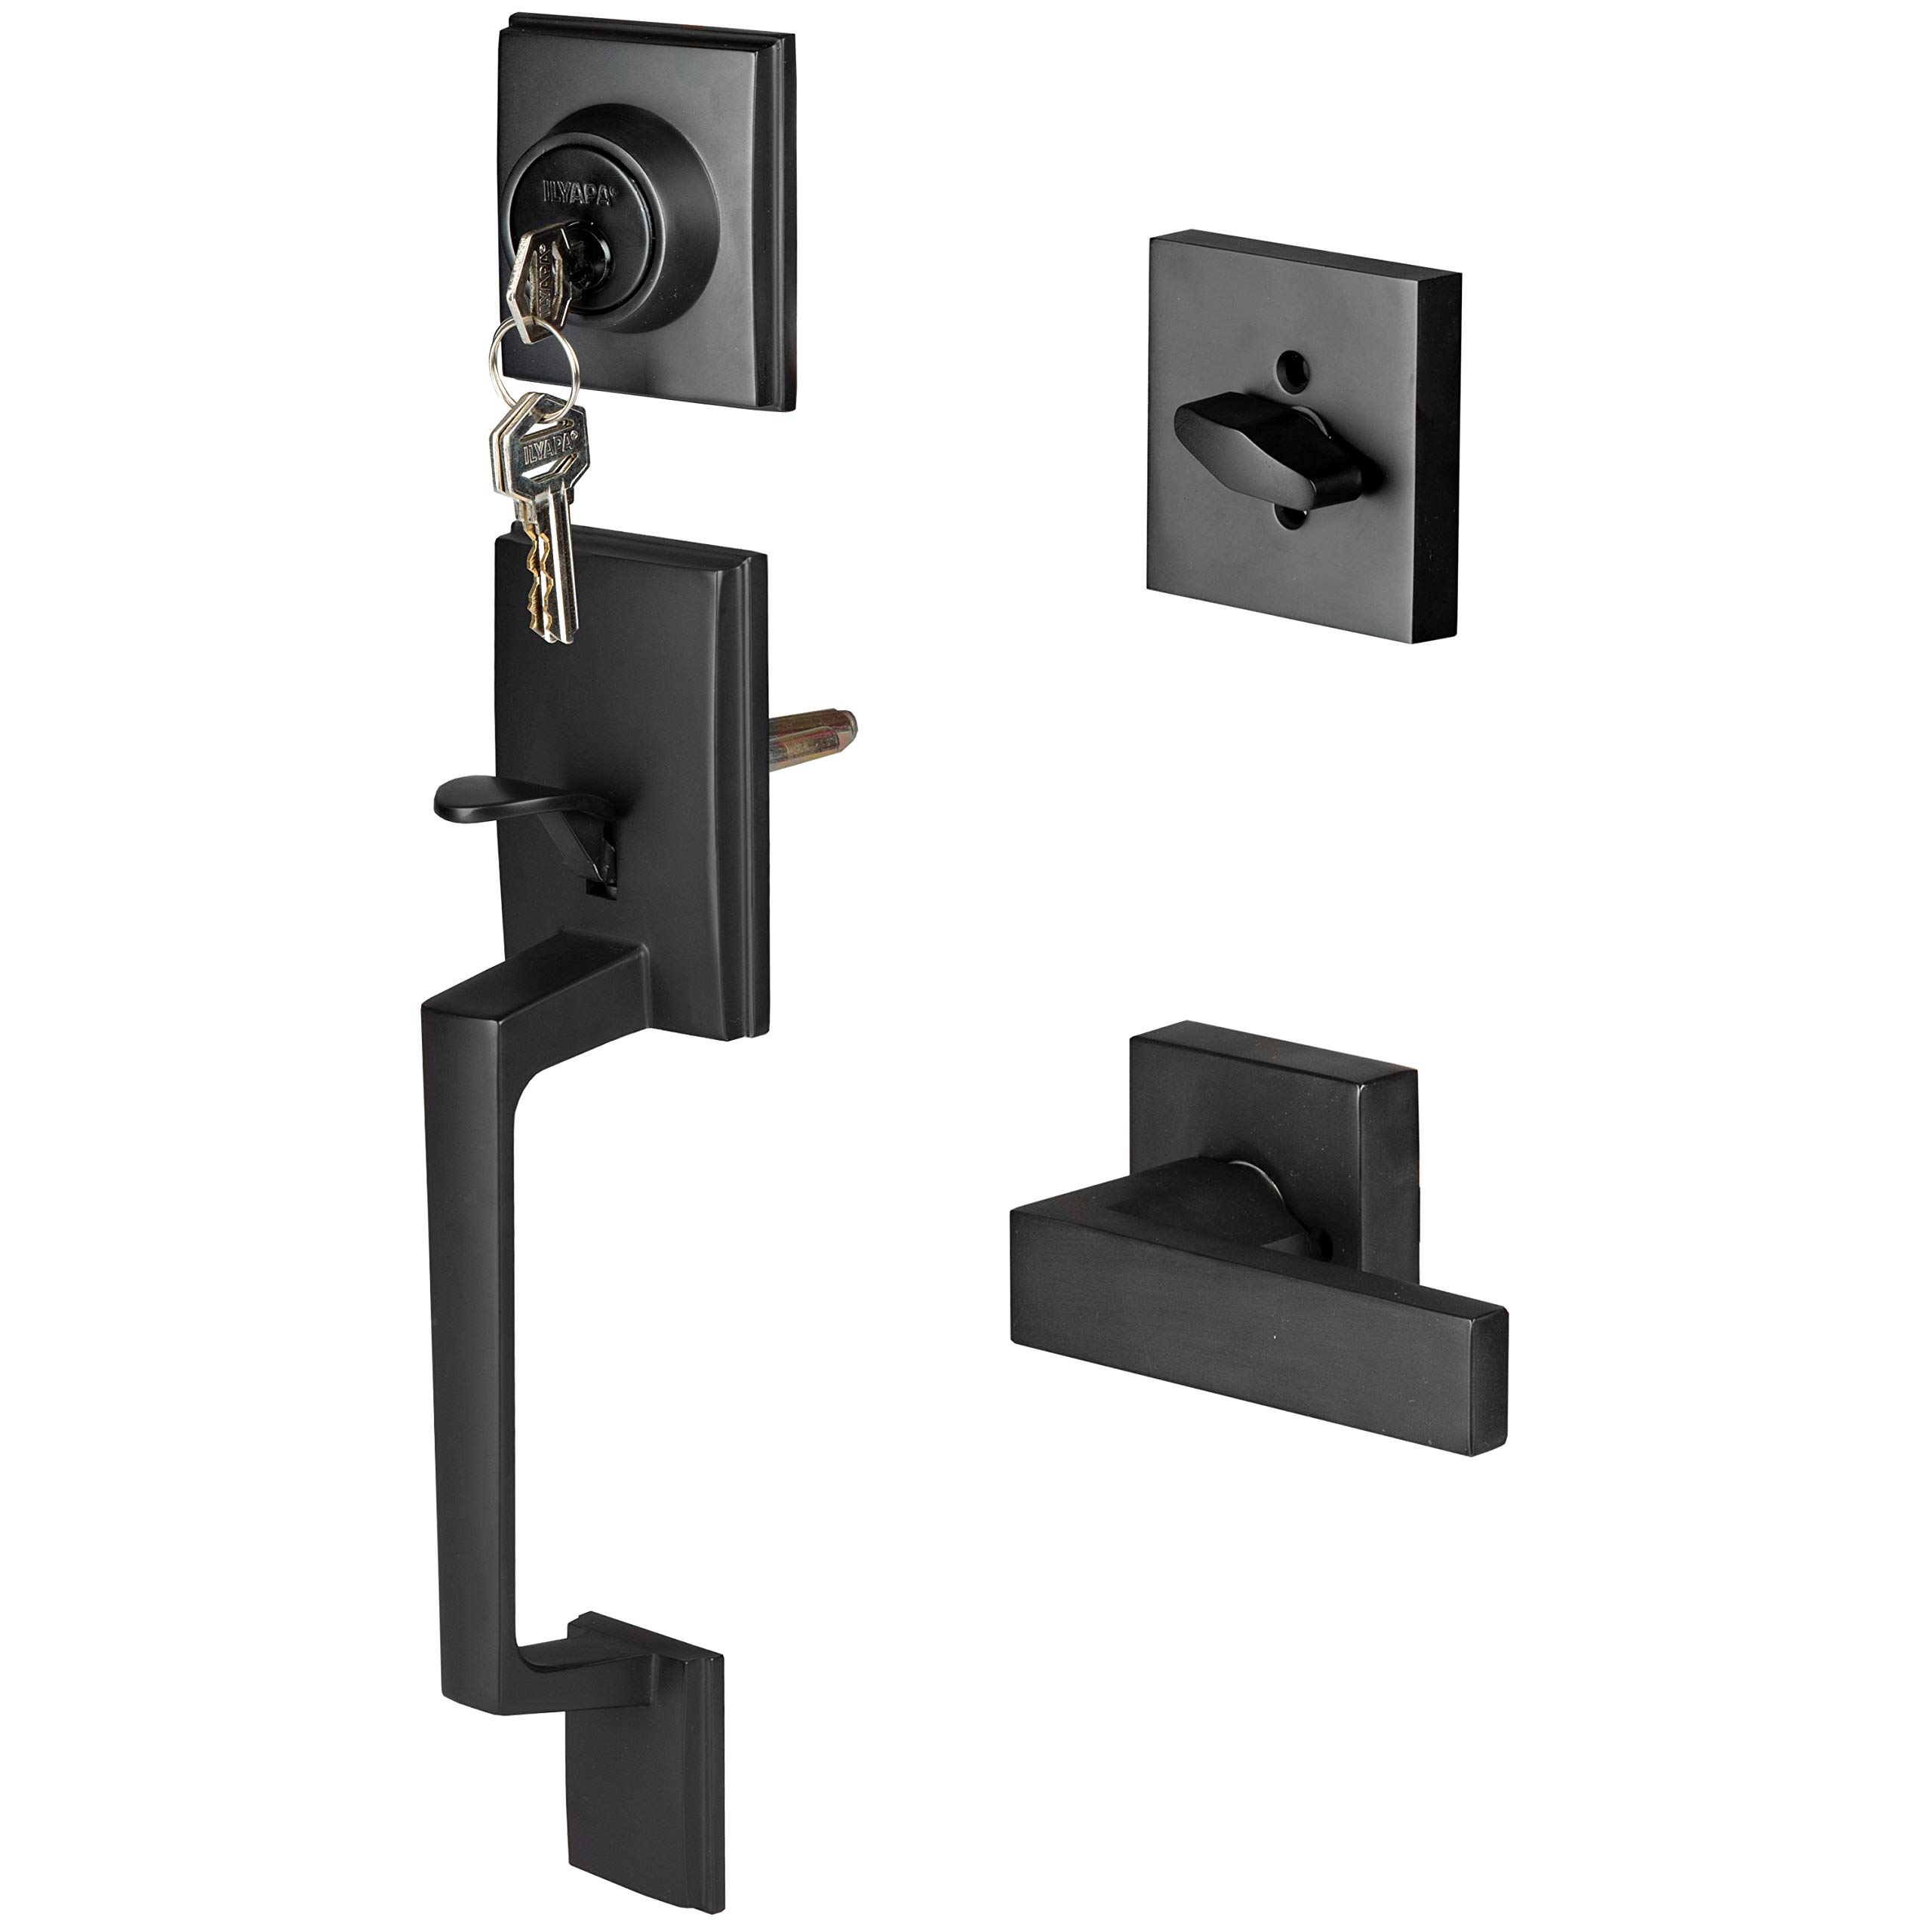 Modern Style Front Door Exterior Handleset - Lock Set Handle Hardware with Single Cylinder Deadbolt Lock and Halifax Lever - Low Profile Contemporary Design - Improved Matte Black Finish